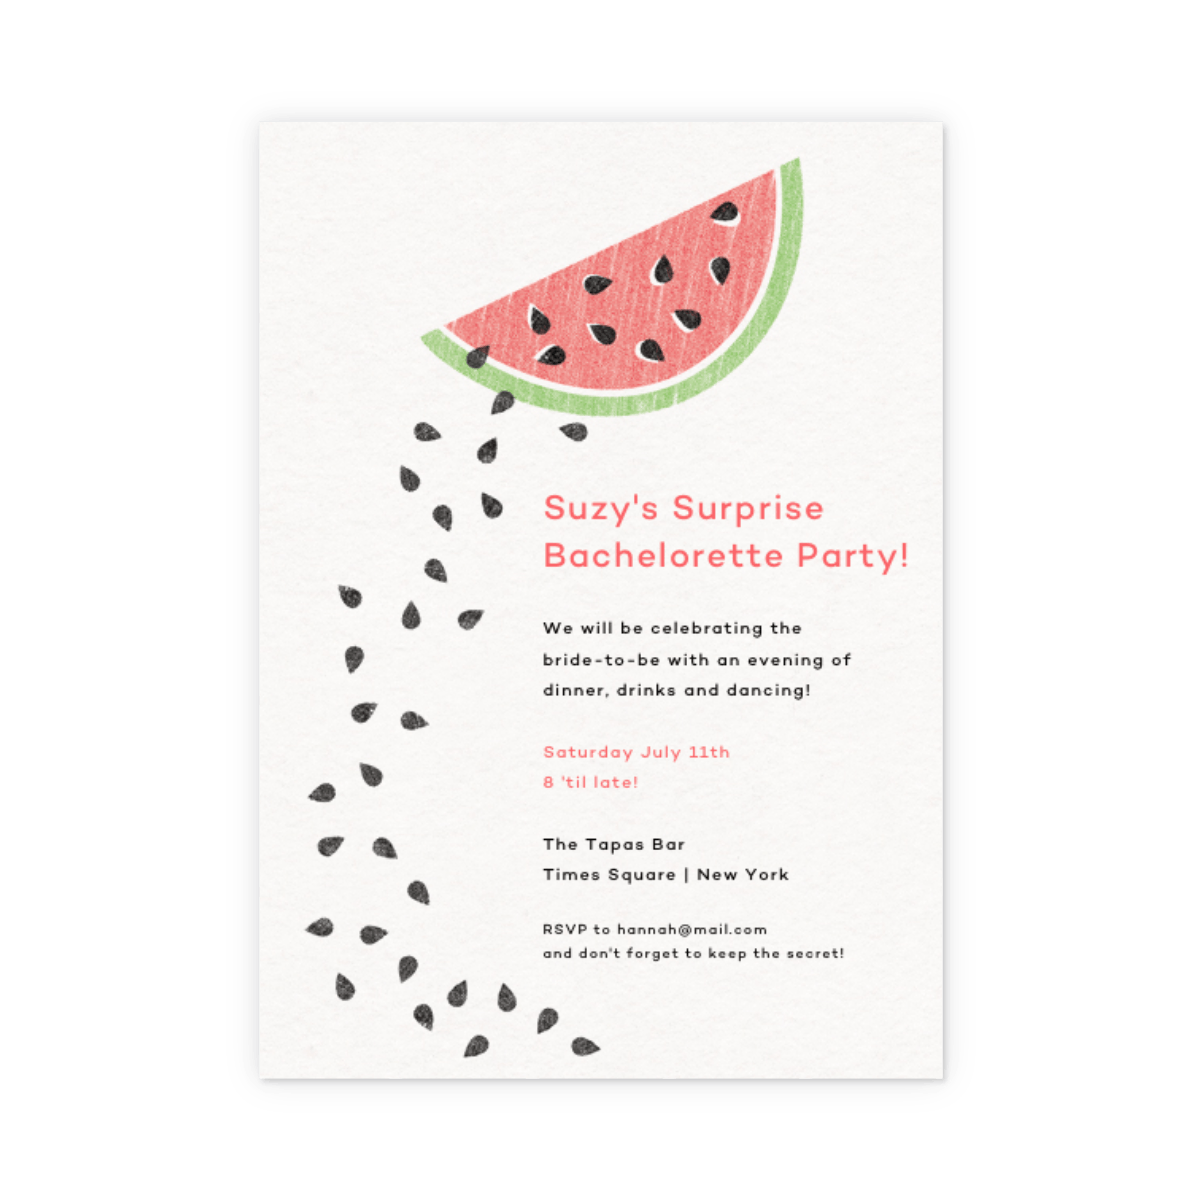 Https%3a%2f%2fwww.papier.com%2fproduct image%2f46322%2f4%2fwatermelon 11415 front 1565554386.png?ixlib=rb 1.1